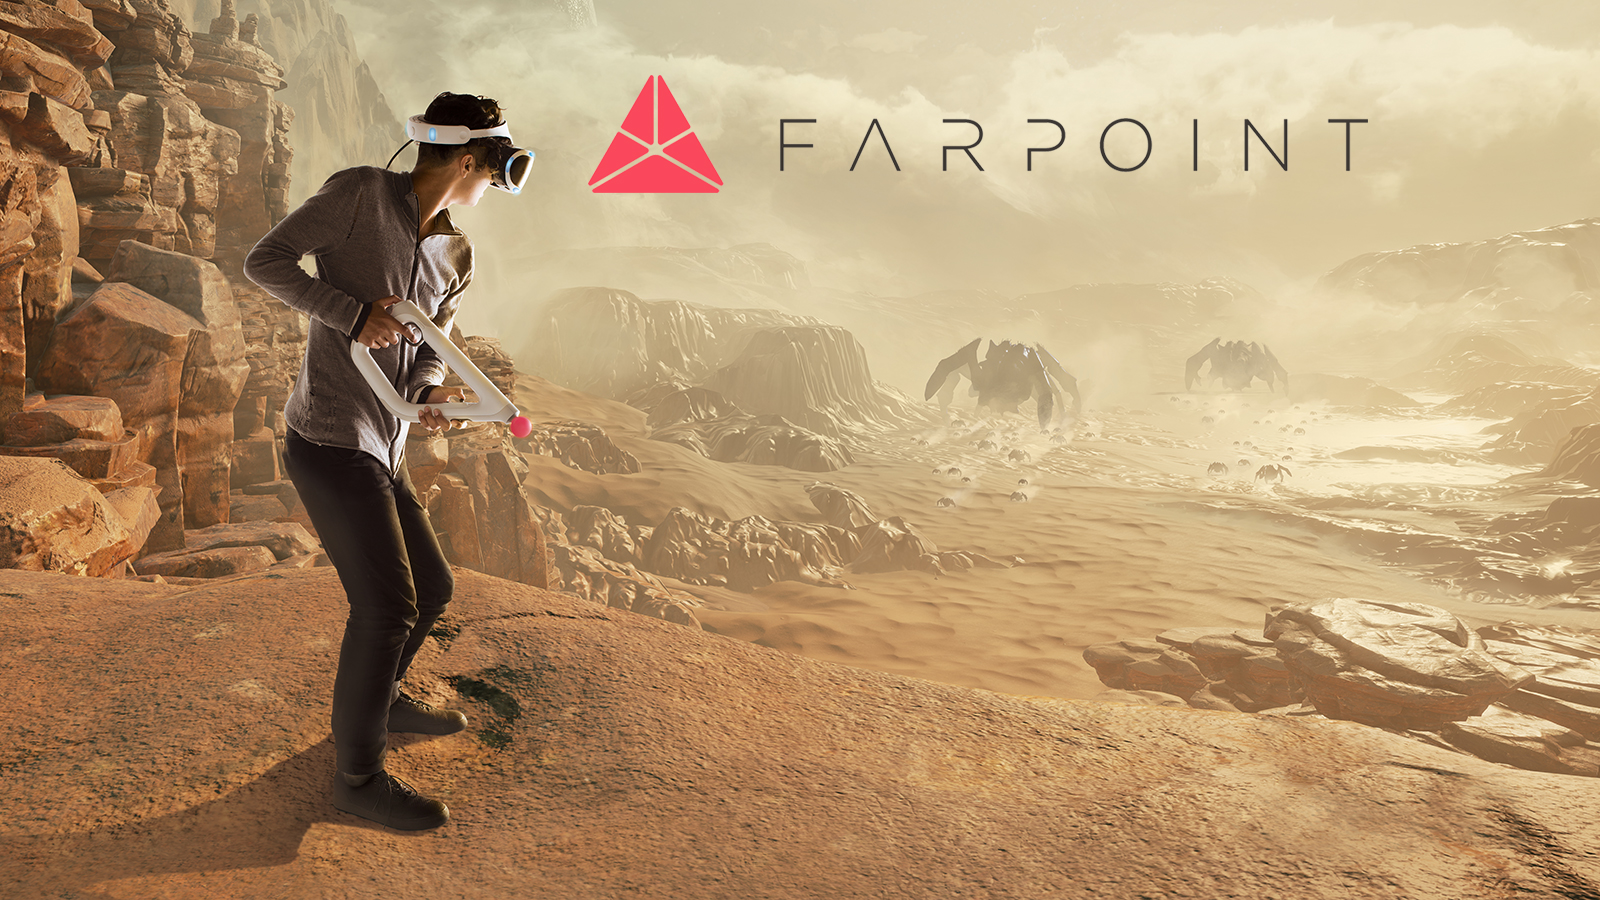 Farpoint for PlayStation VR gave me virtual reality shellshock – and I loved it